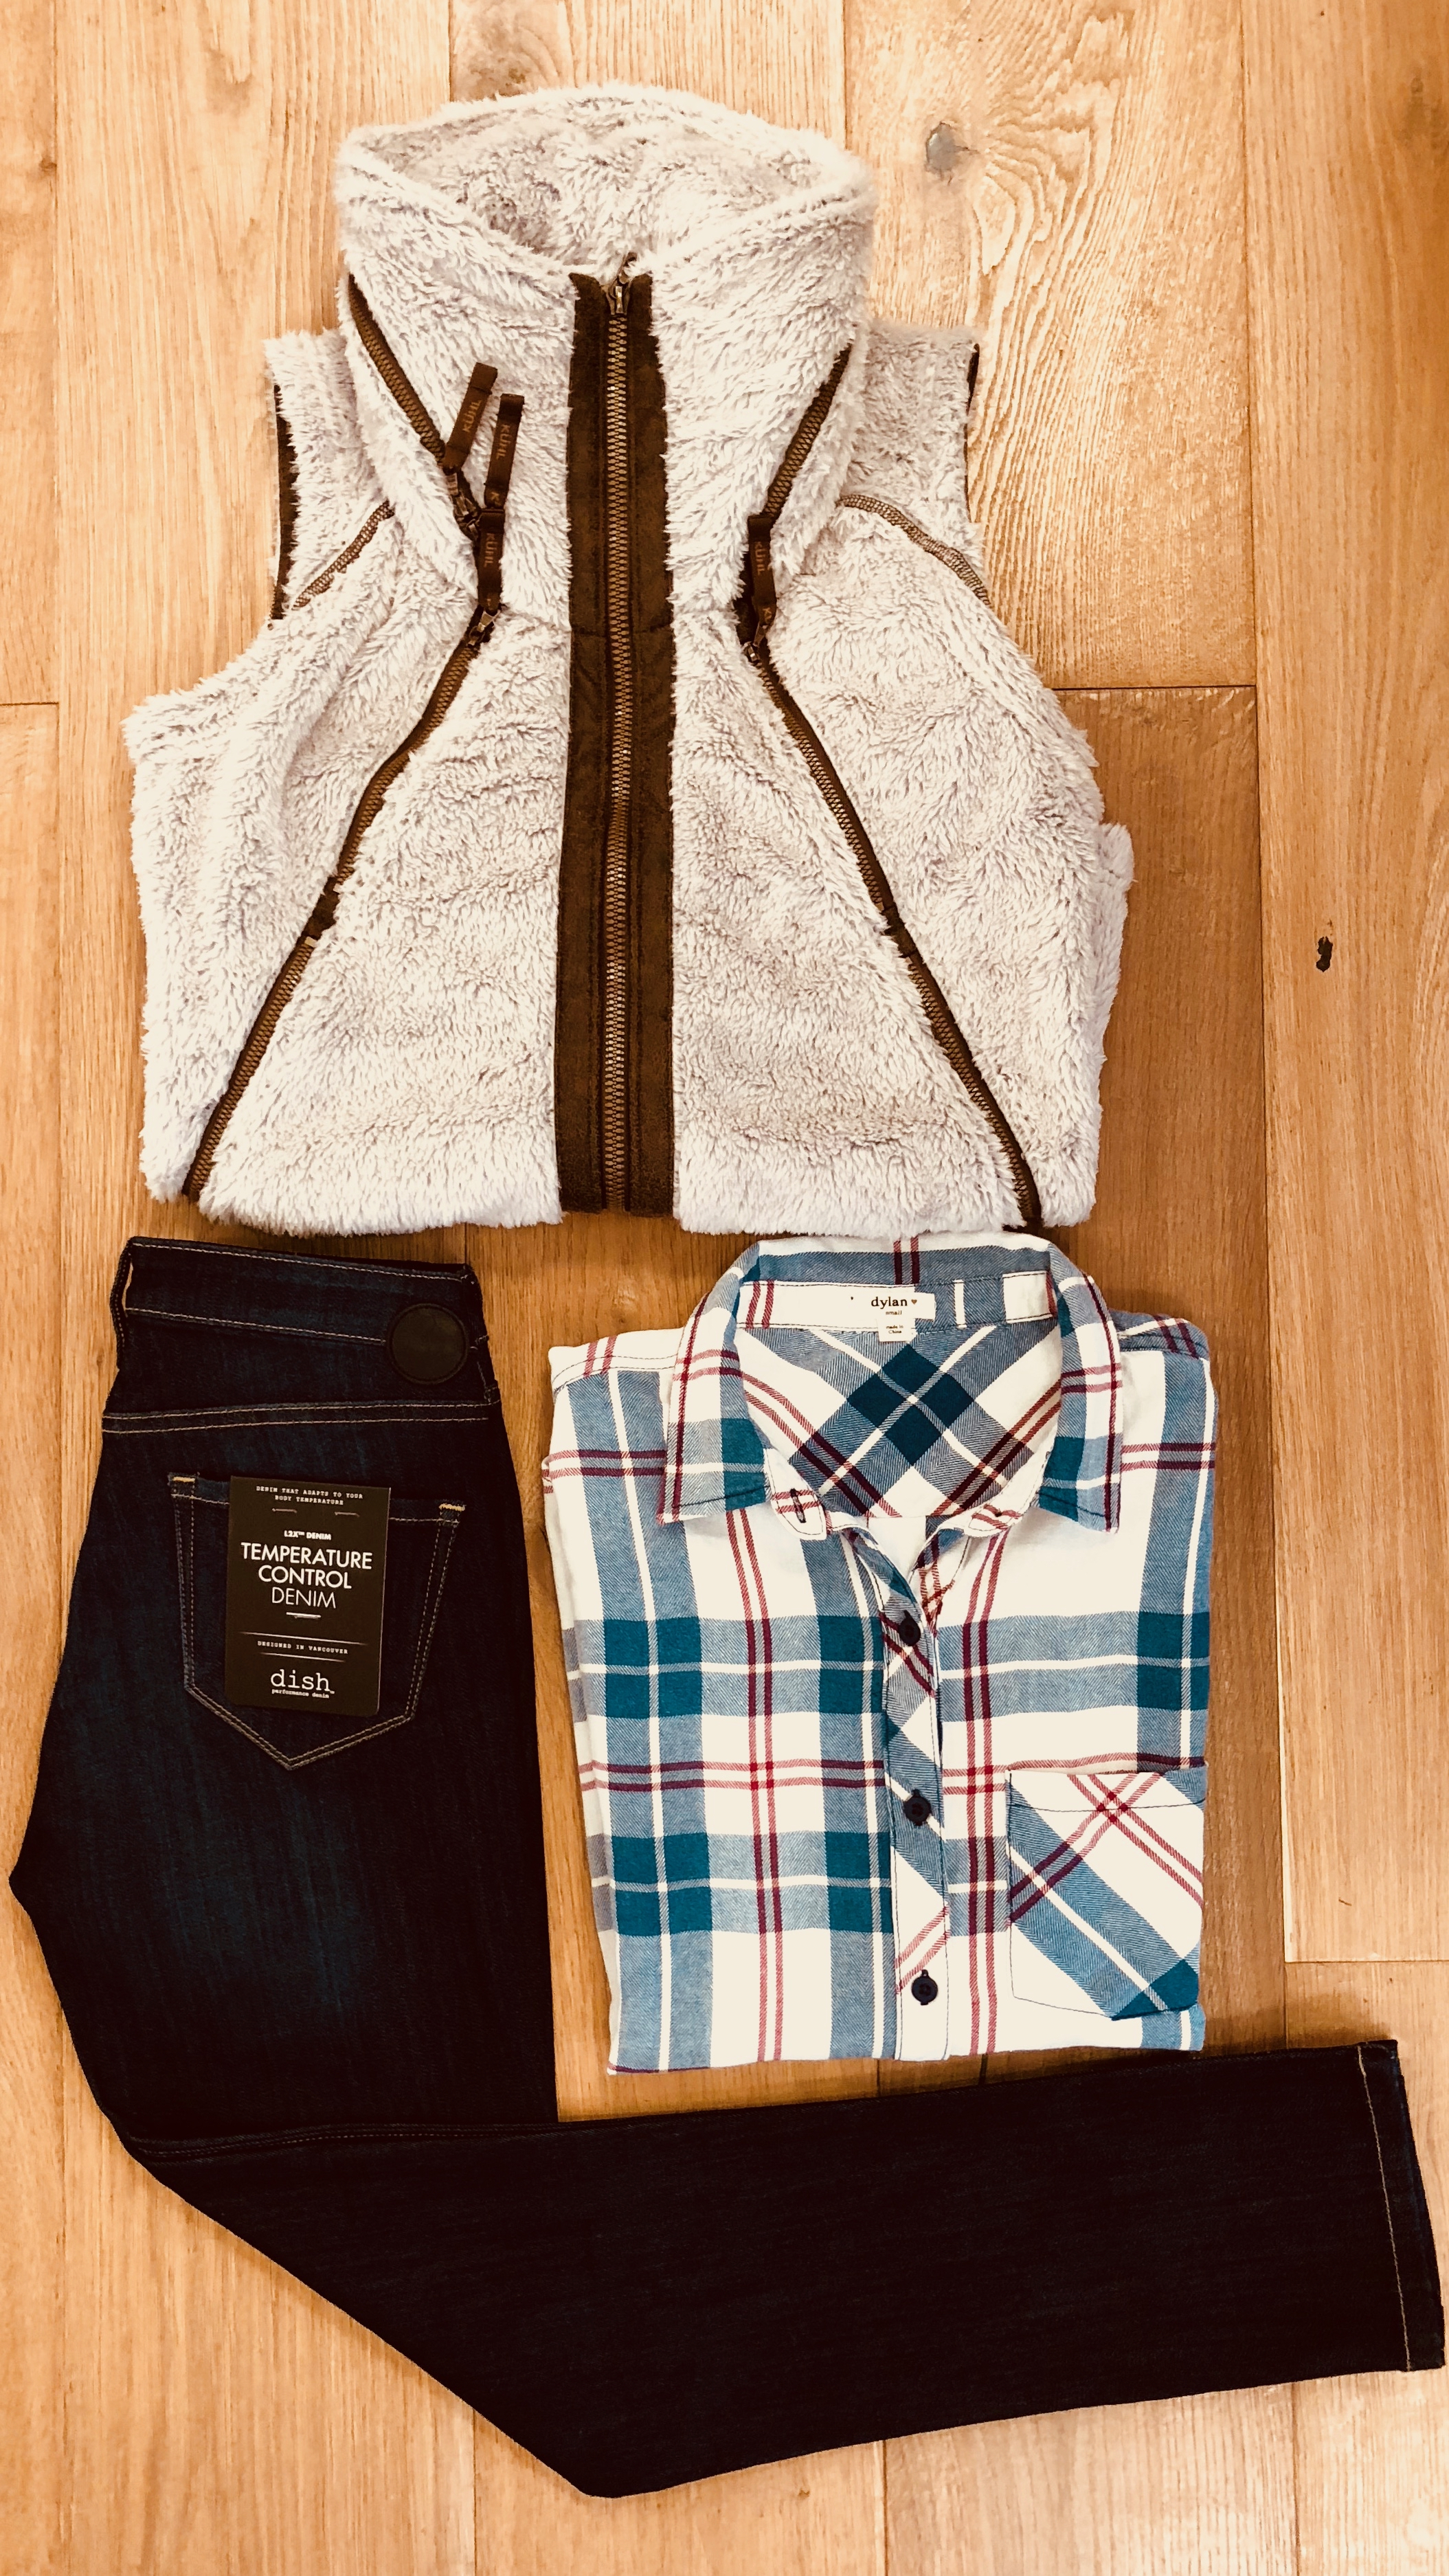 COZY WEEKEND -Kuhn Flight Jacket, Dish Jeans and a flannel from Dylan create a killer outfit that is comfortable and stylish.